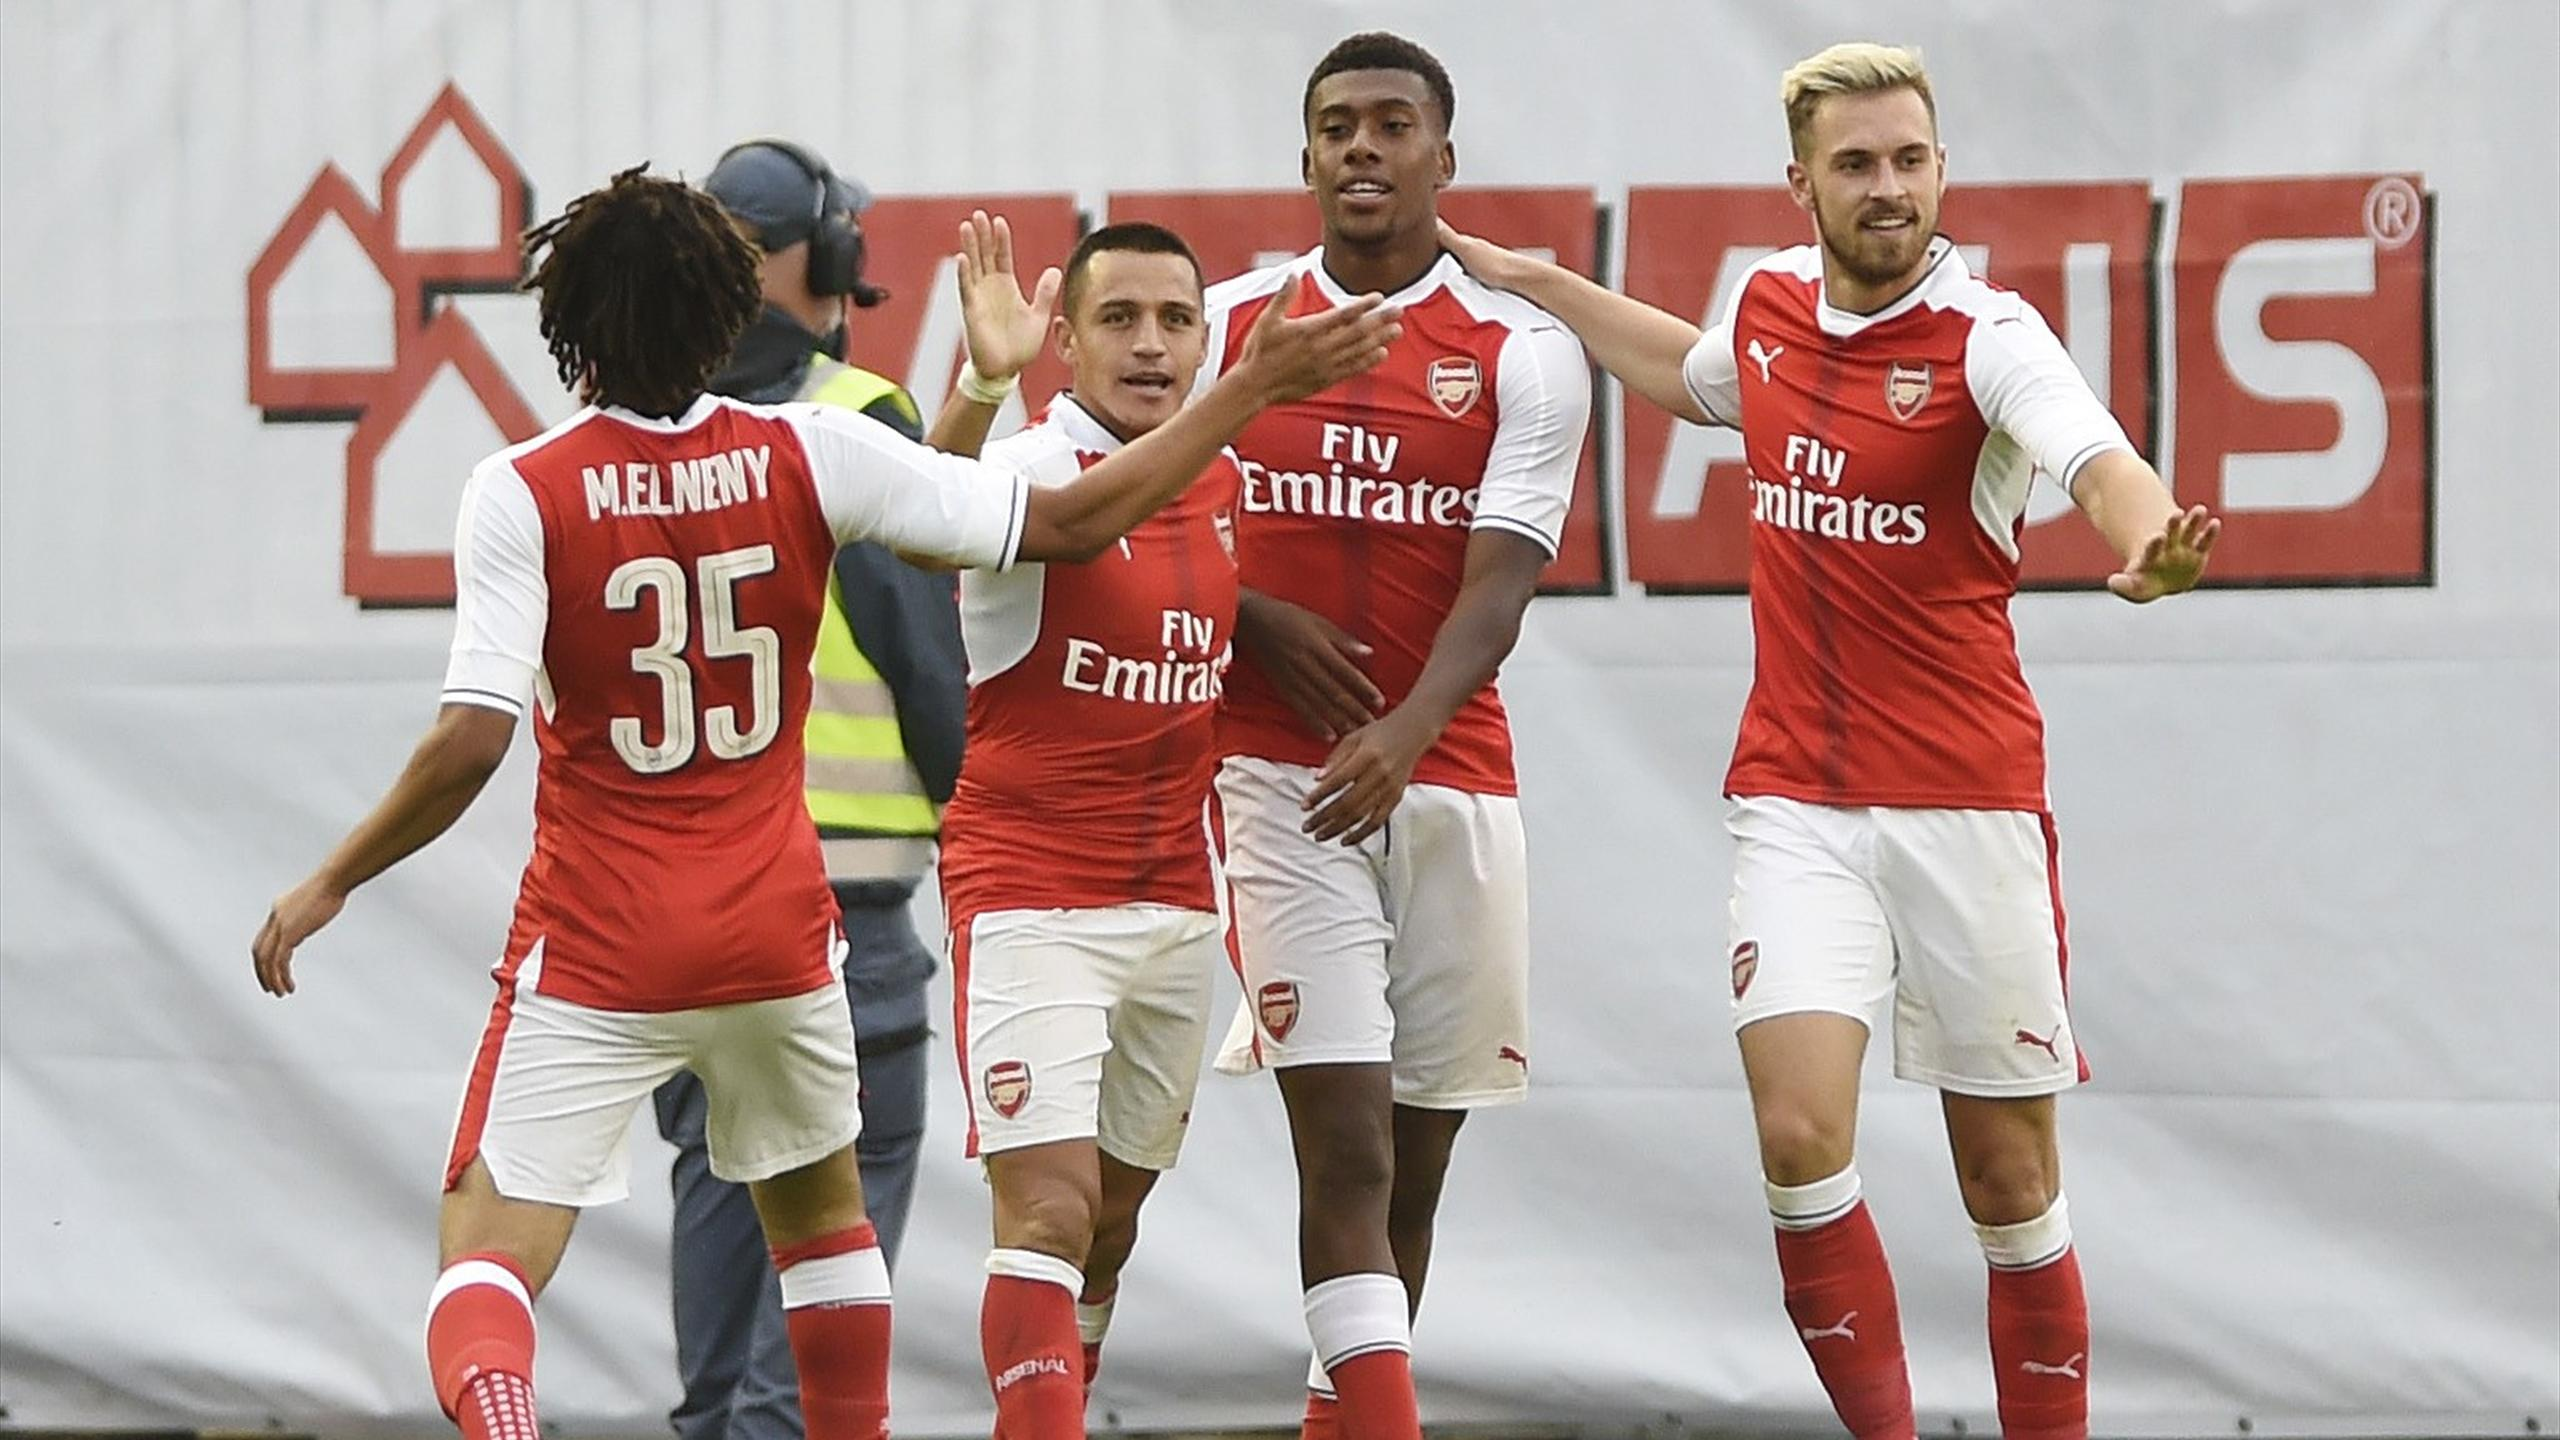 Arsenal's Alex Iwobi celebrates scoring their first goal with Alexis Sanchez, Mohamed Elneny and Aaron Ramsey